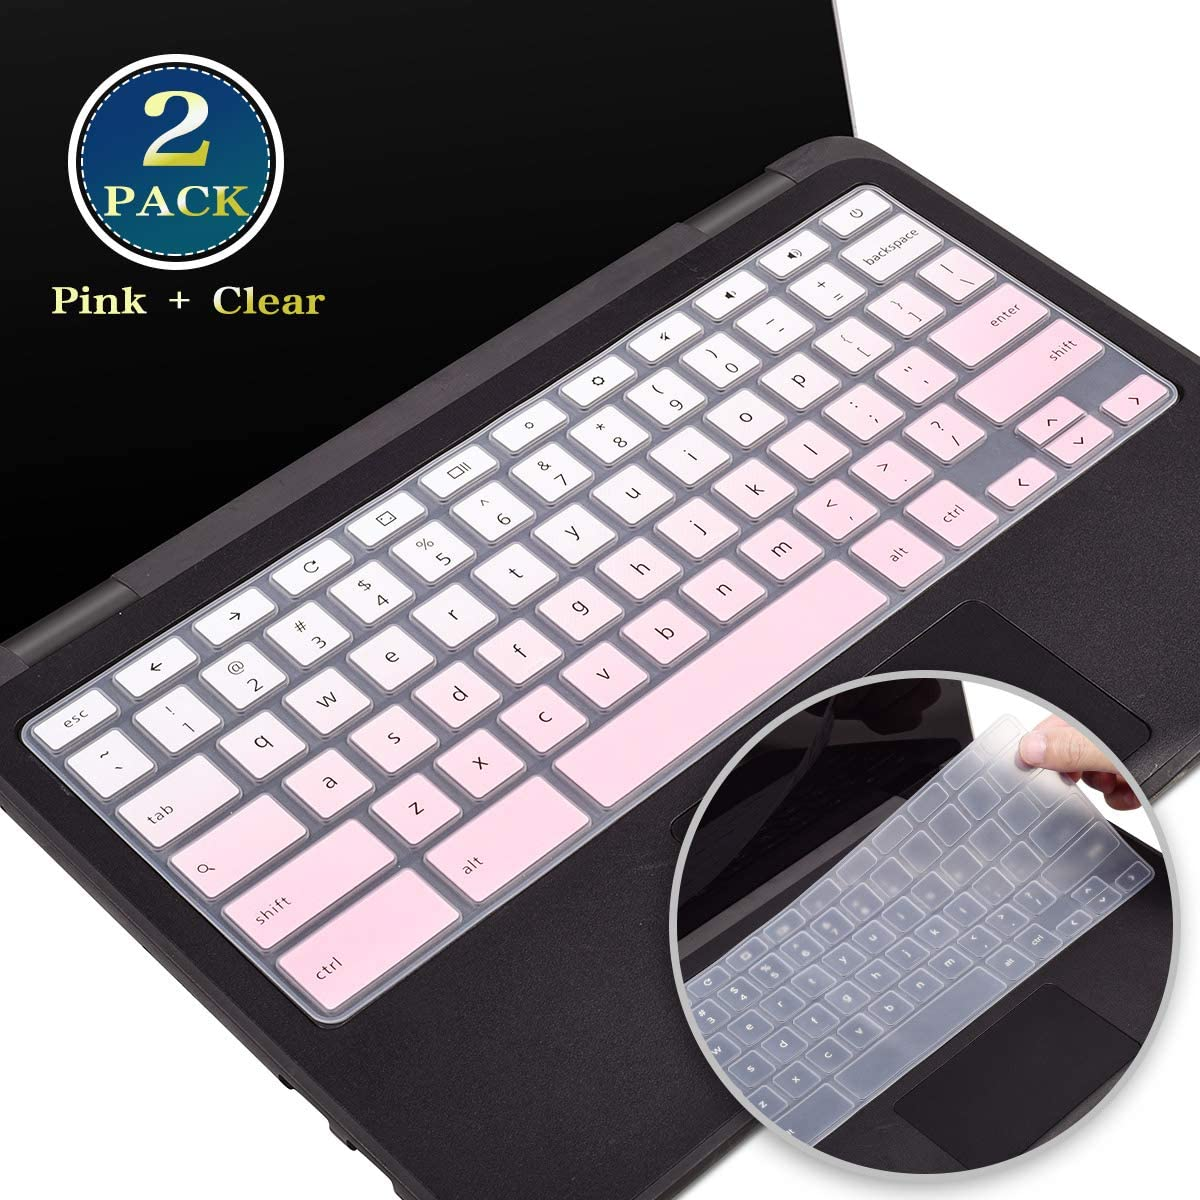 2 Pack Silicone Keyboard Cover for Dell Chromebook 13 3380, Dell 11.6 Chromebook 3100 3120 3180 3189 5190 3181 C3181 P22T,Dell Chromebook Keyboard Protector 11.6 Inch(Pink+Clear)